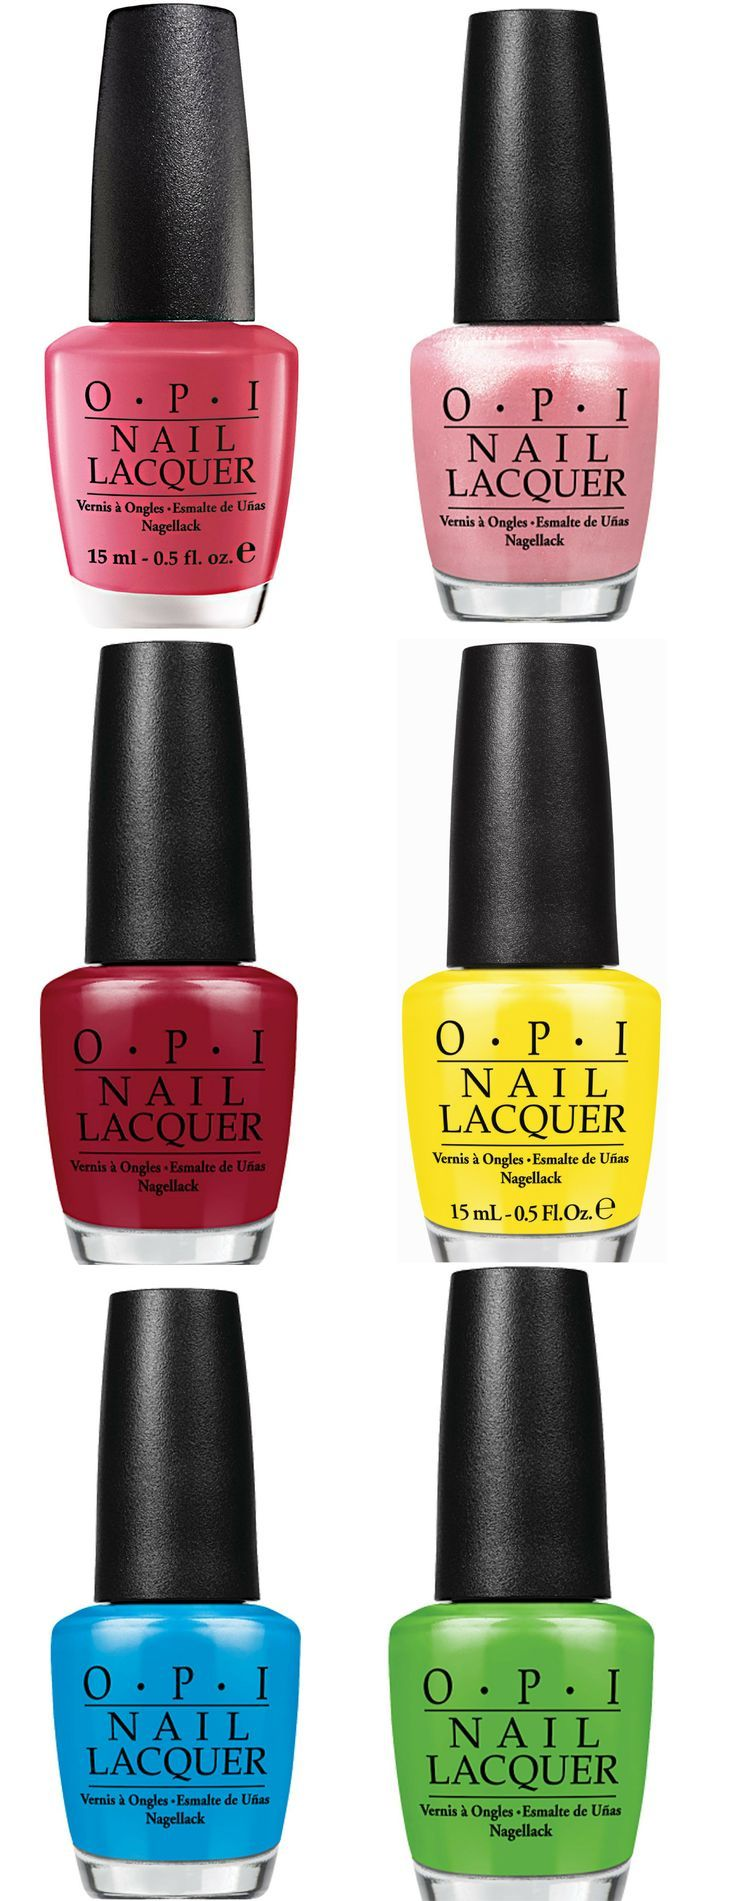 Bestseller Nail Polish From All Over The World - O.P. I.